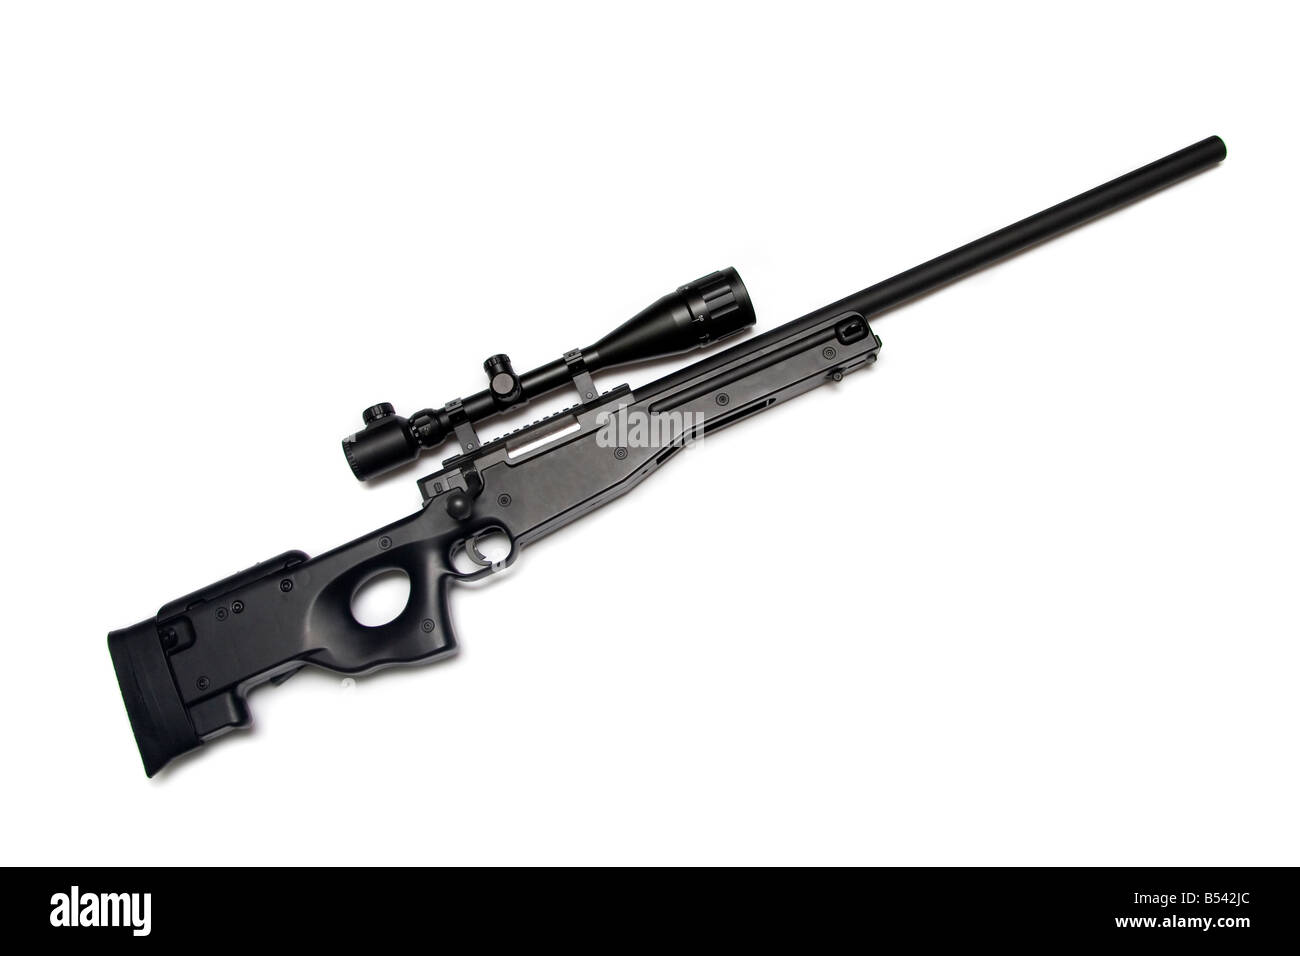 Modern military sniper rifle with riflescope isolated on white background L96 - Stock Image